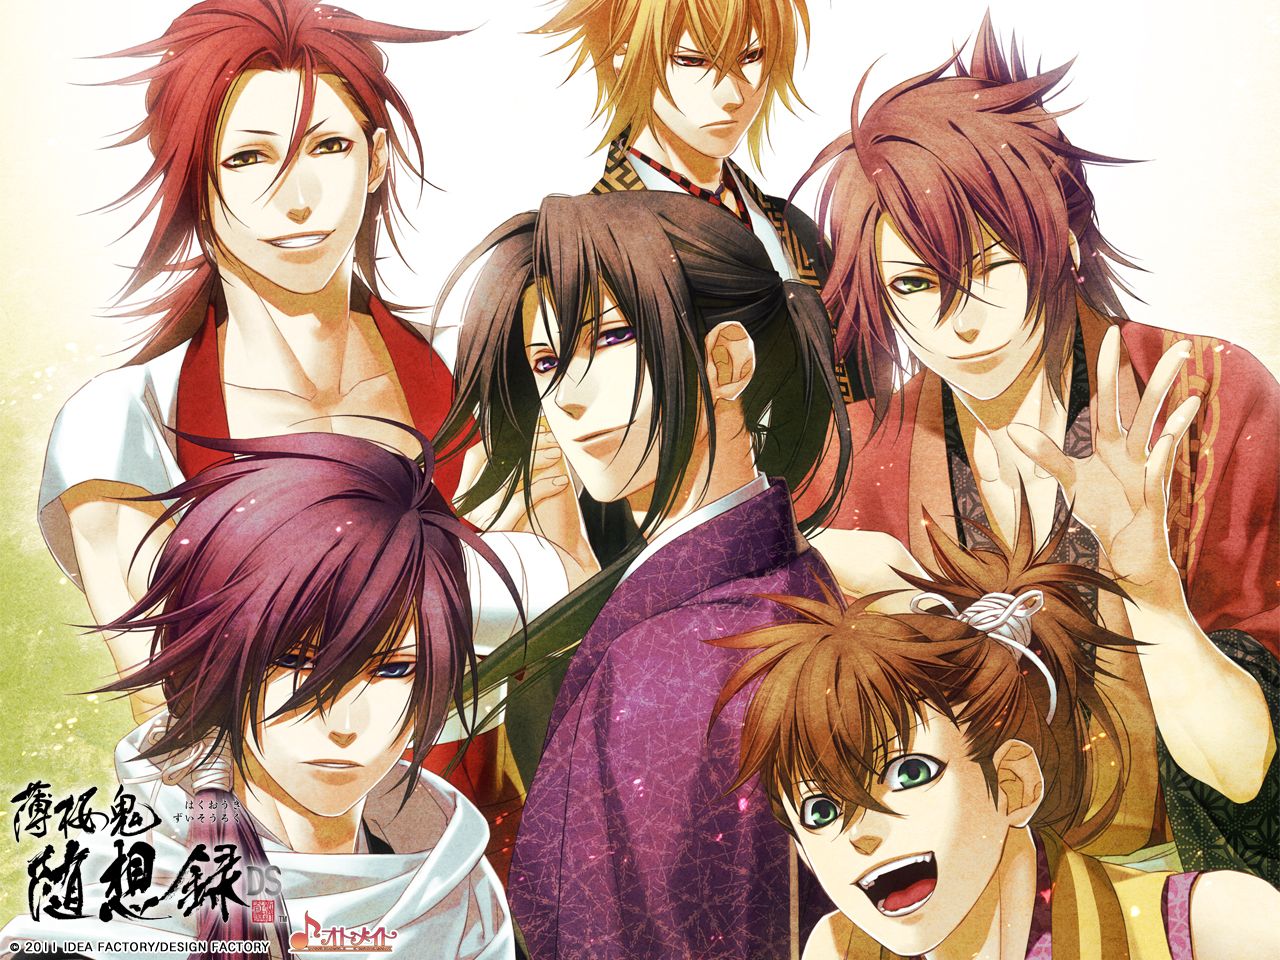 HQ Hakuouki Shinsengumi Kitan Wallpapers | File 1497.76Kb